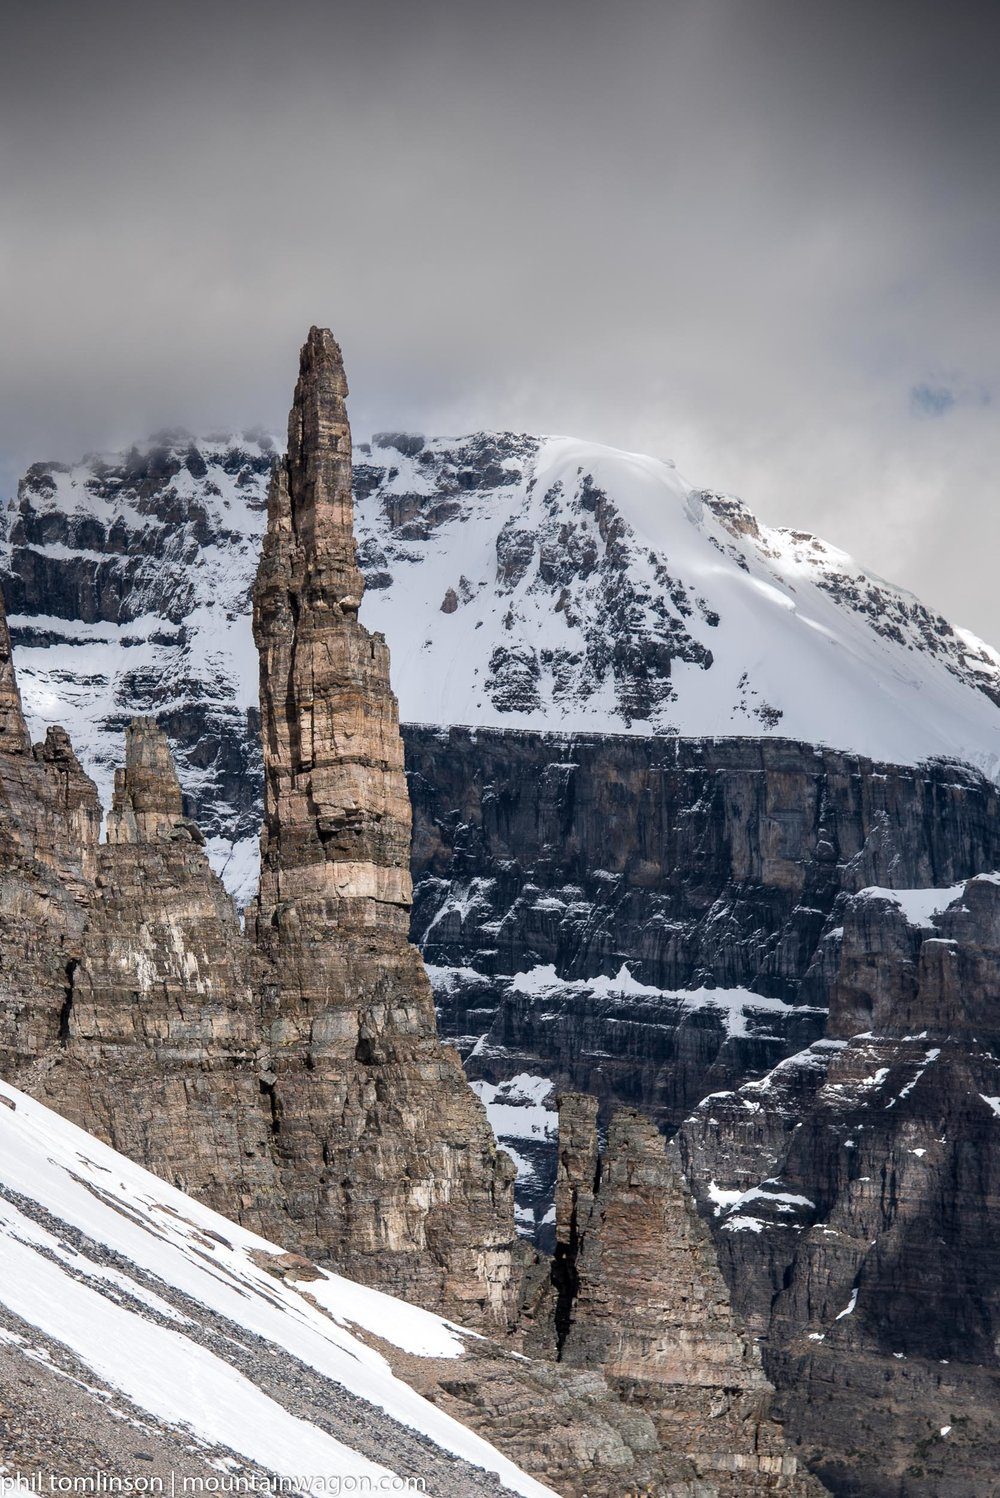 The Grand Sentinel - it's rather recognizable and while it might not look that big - that's four pitches of climbing to the top.